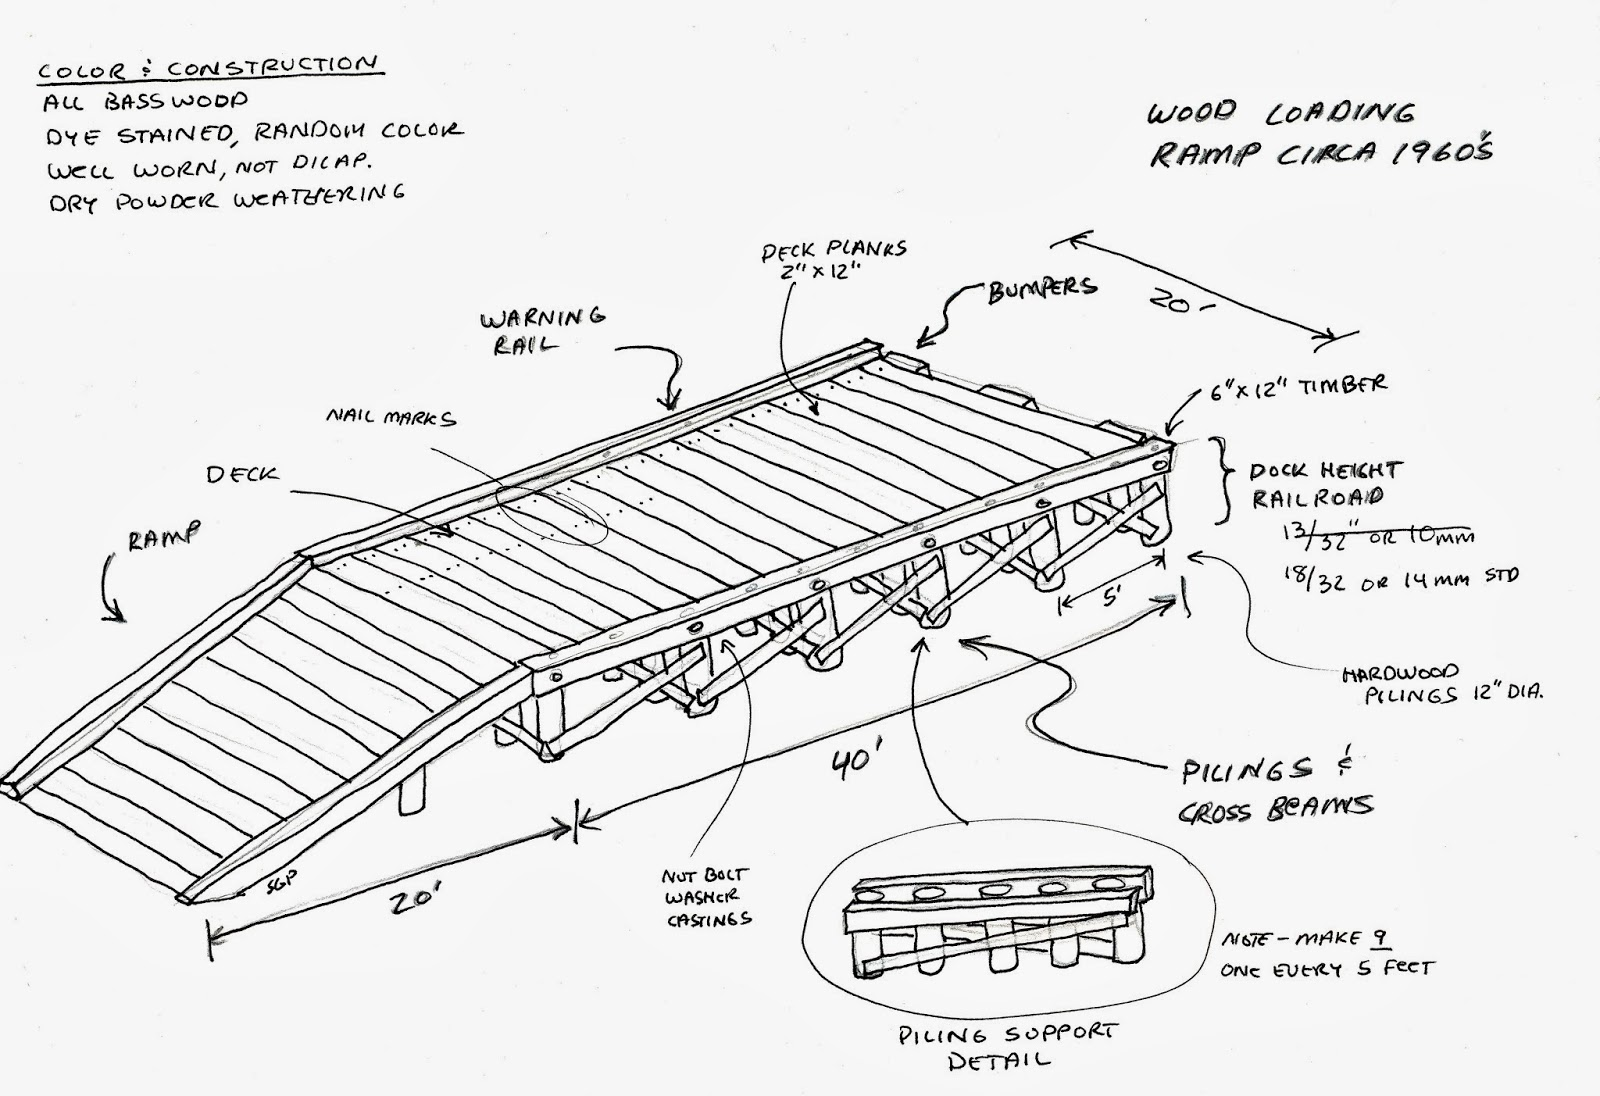 The Model Railroader S Notebook Rick S Ramp Project 03